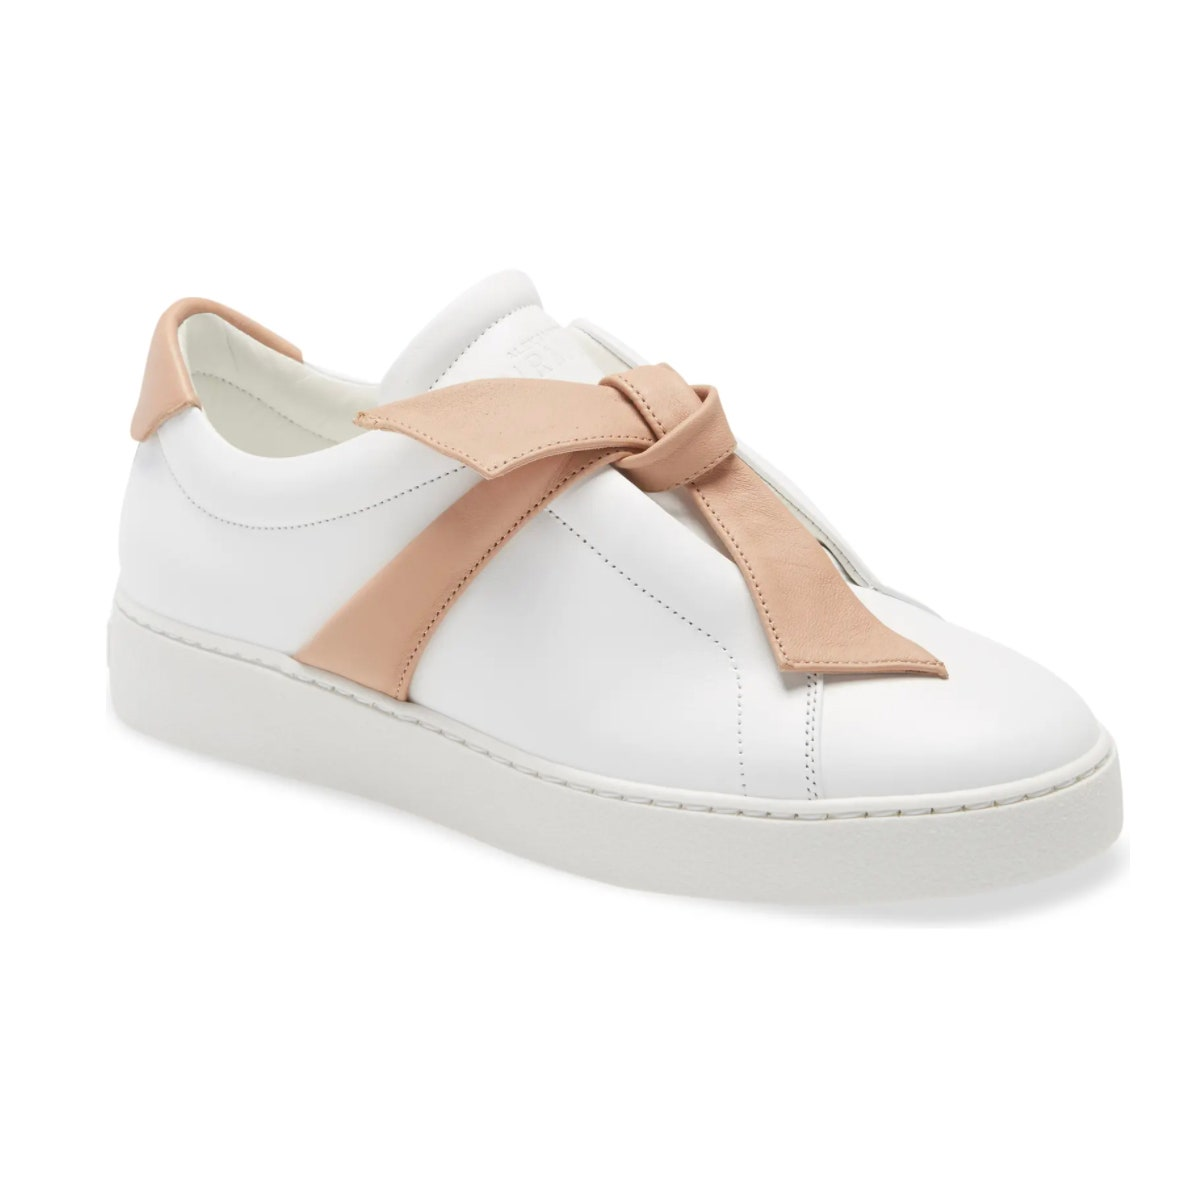 alexandre birman white leather sneakers with bow